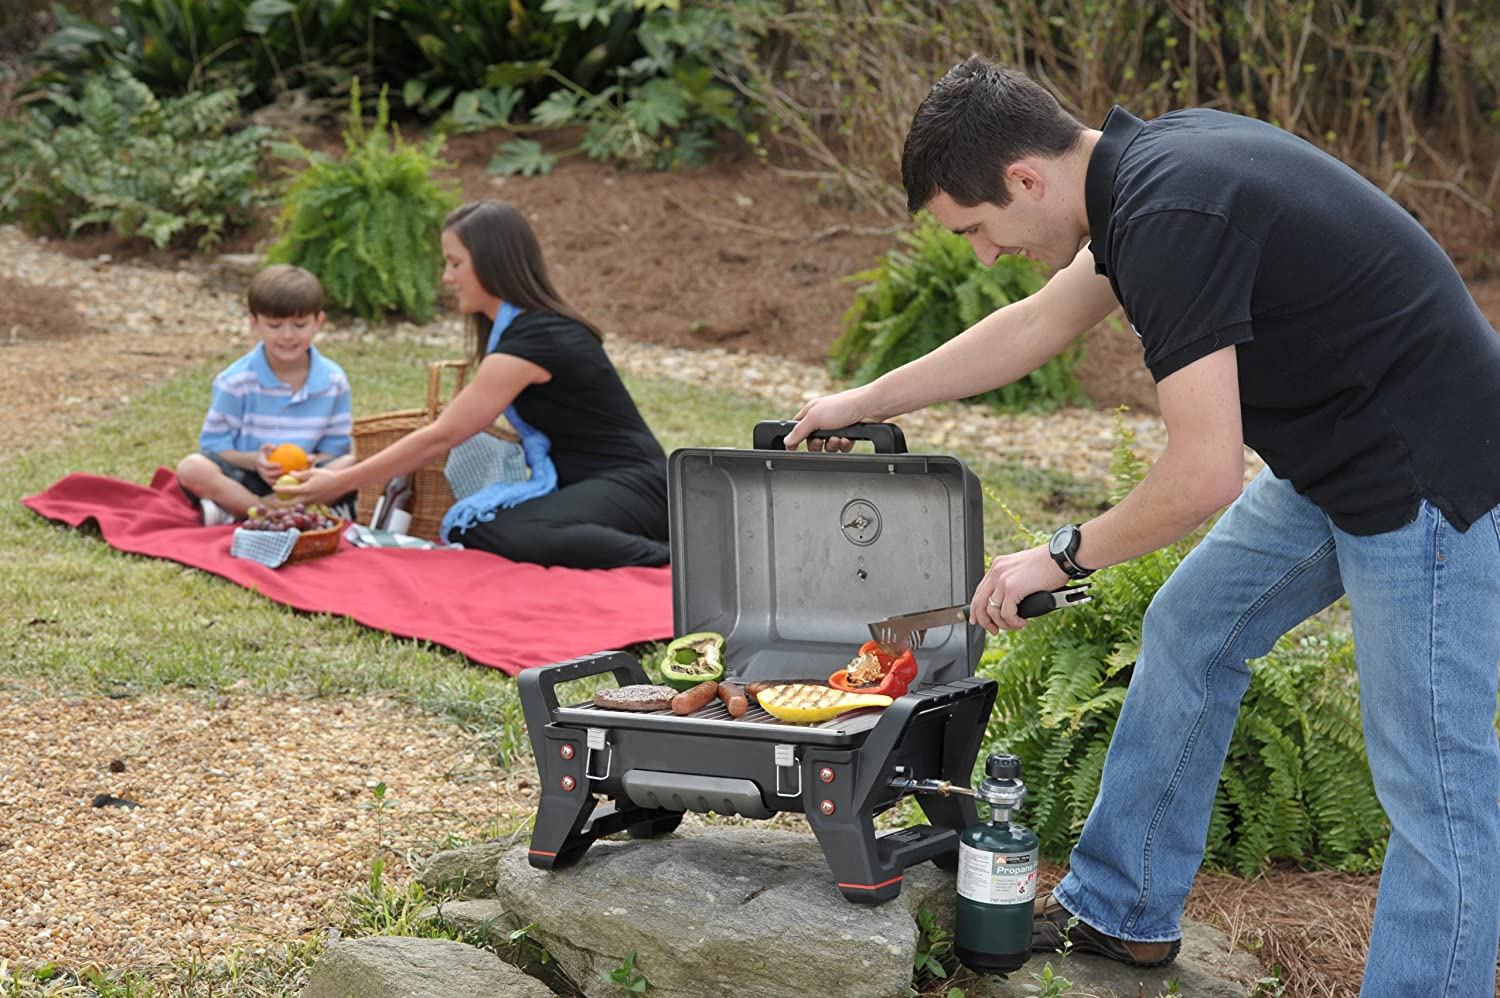 Amazon.com : Char Broil Grill2Go X200 Portable TRU Infrared Liquid Propane  Gas Grill : Grill Parts : Garden U0026 Outdoor